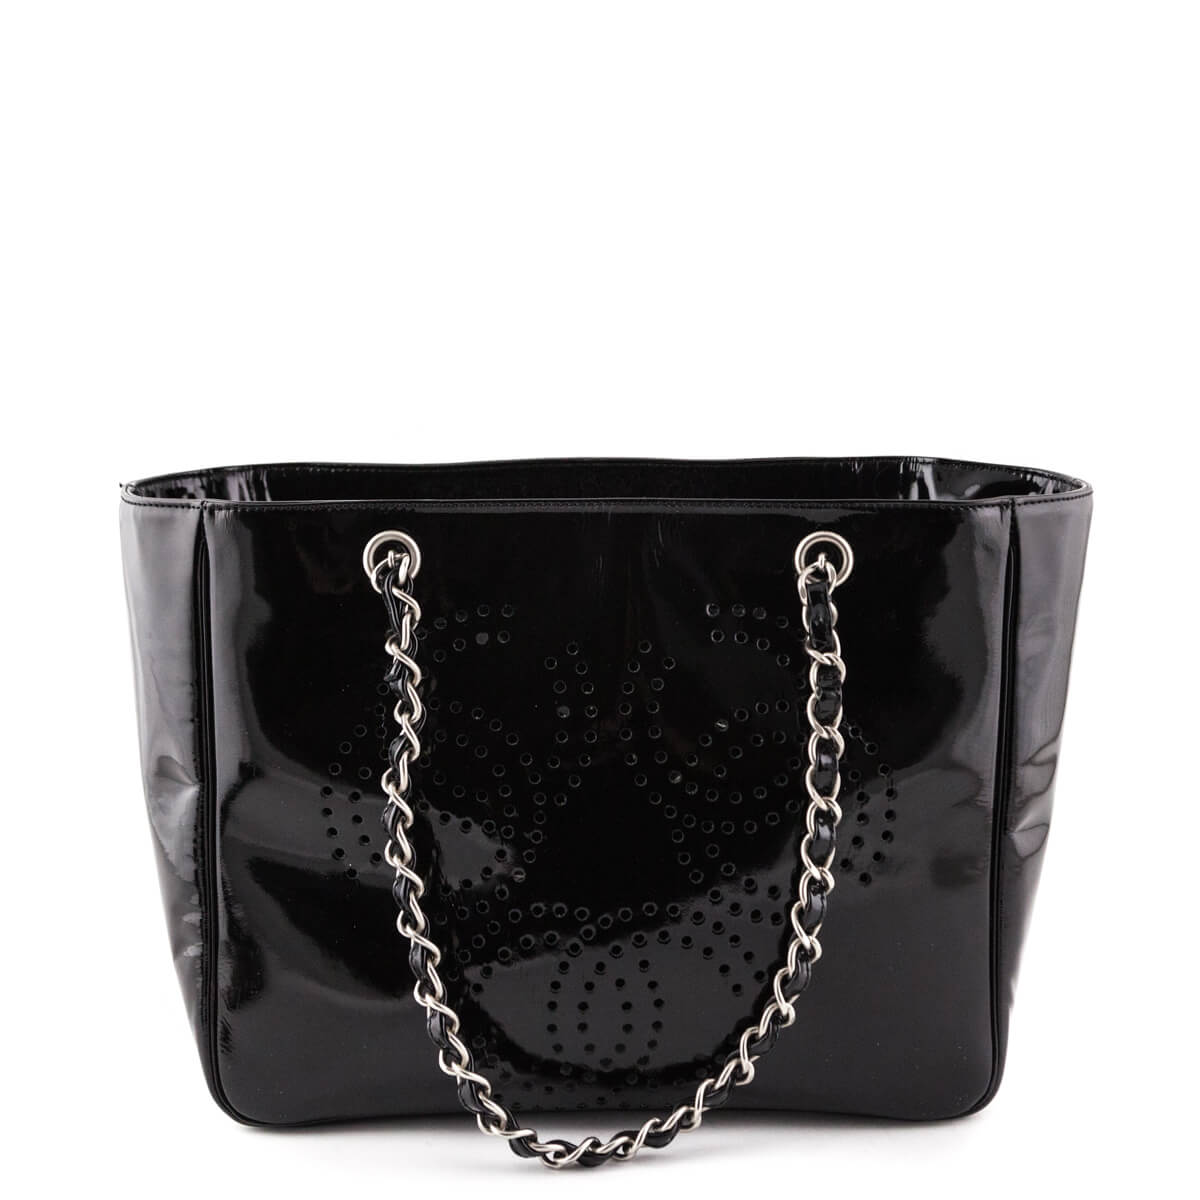 ee4c829ebc9e ... Chanel Black Patent Perforated CC Shopping Tote - LOVE that BAG -  Preowned Authentic Designer Handbags ...